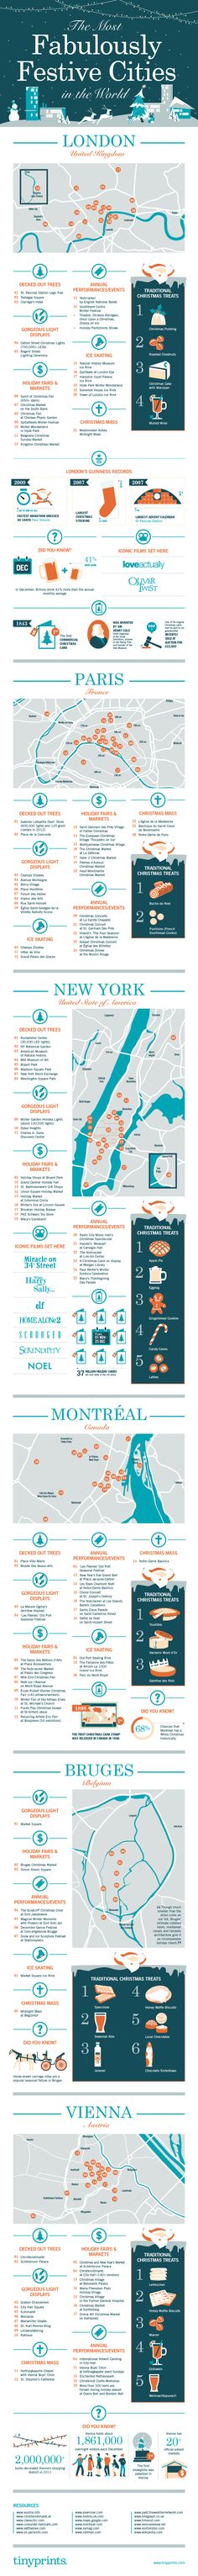 Infographic: The Most Fabulously Festive Cities in the World on the Tinyprints Blog. #infographic